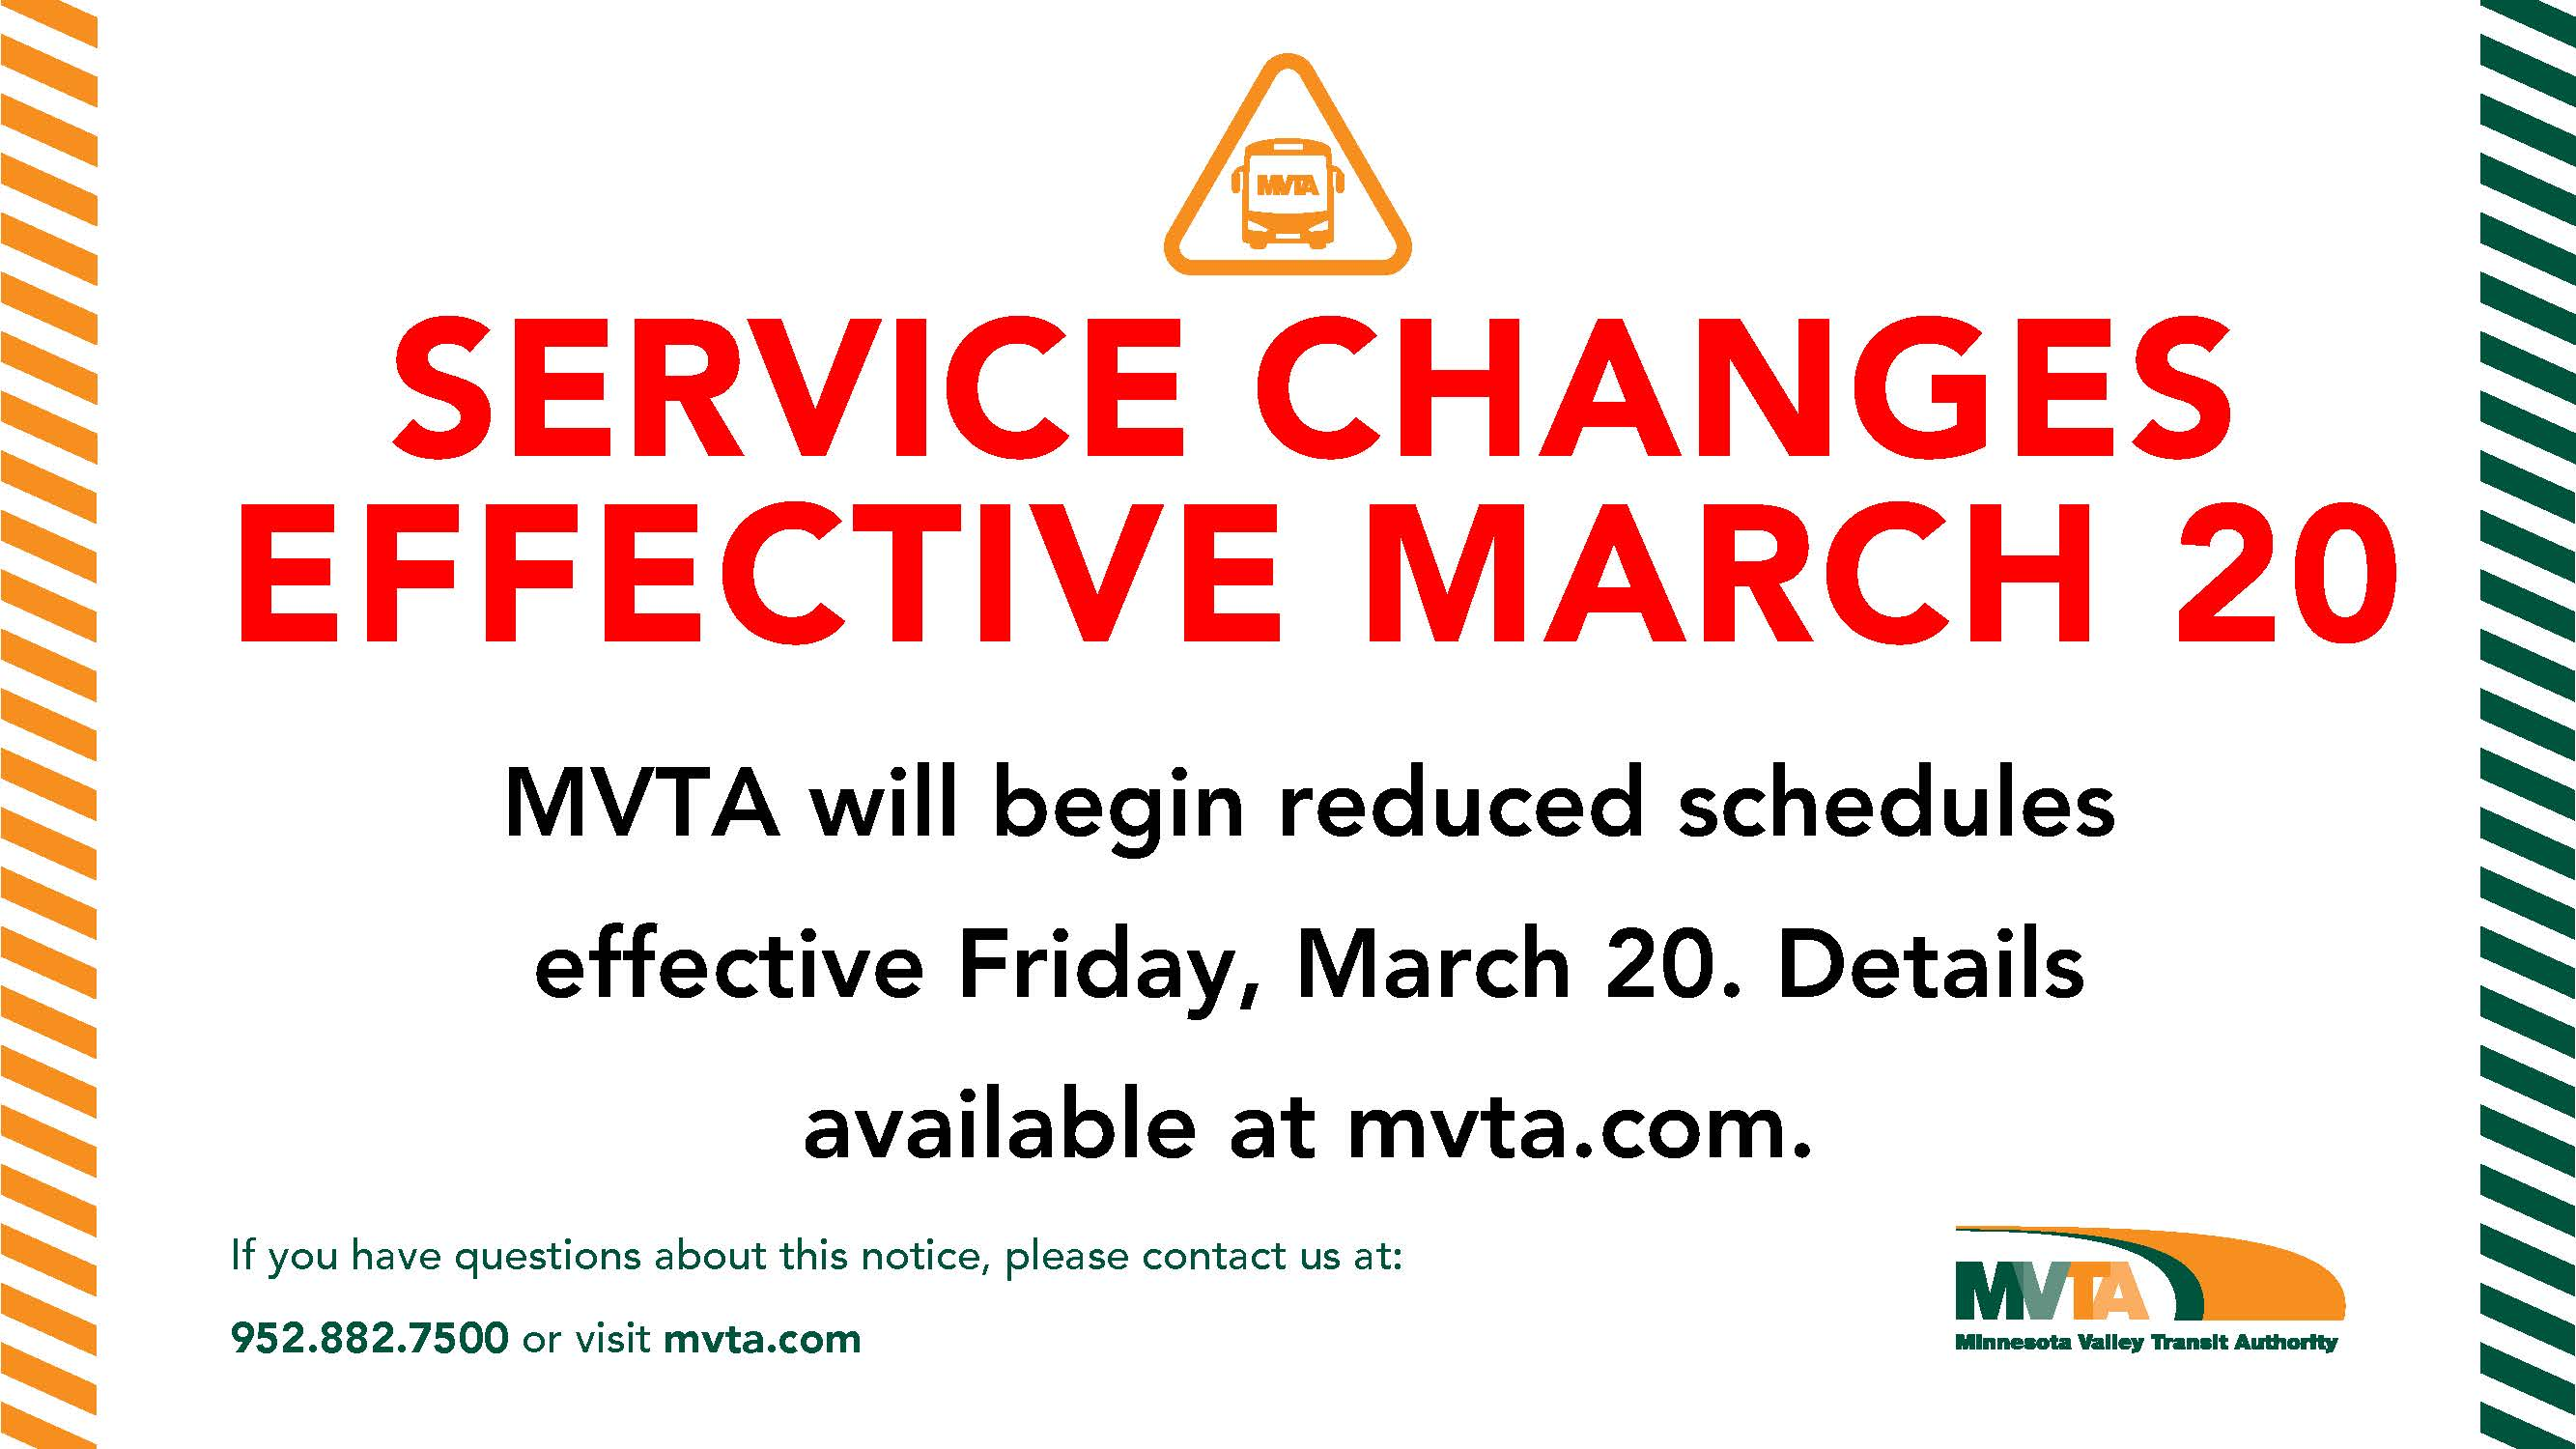 reach_service_change_march_20.jpg